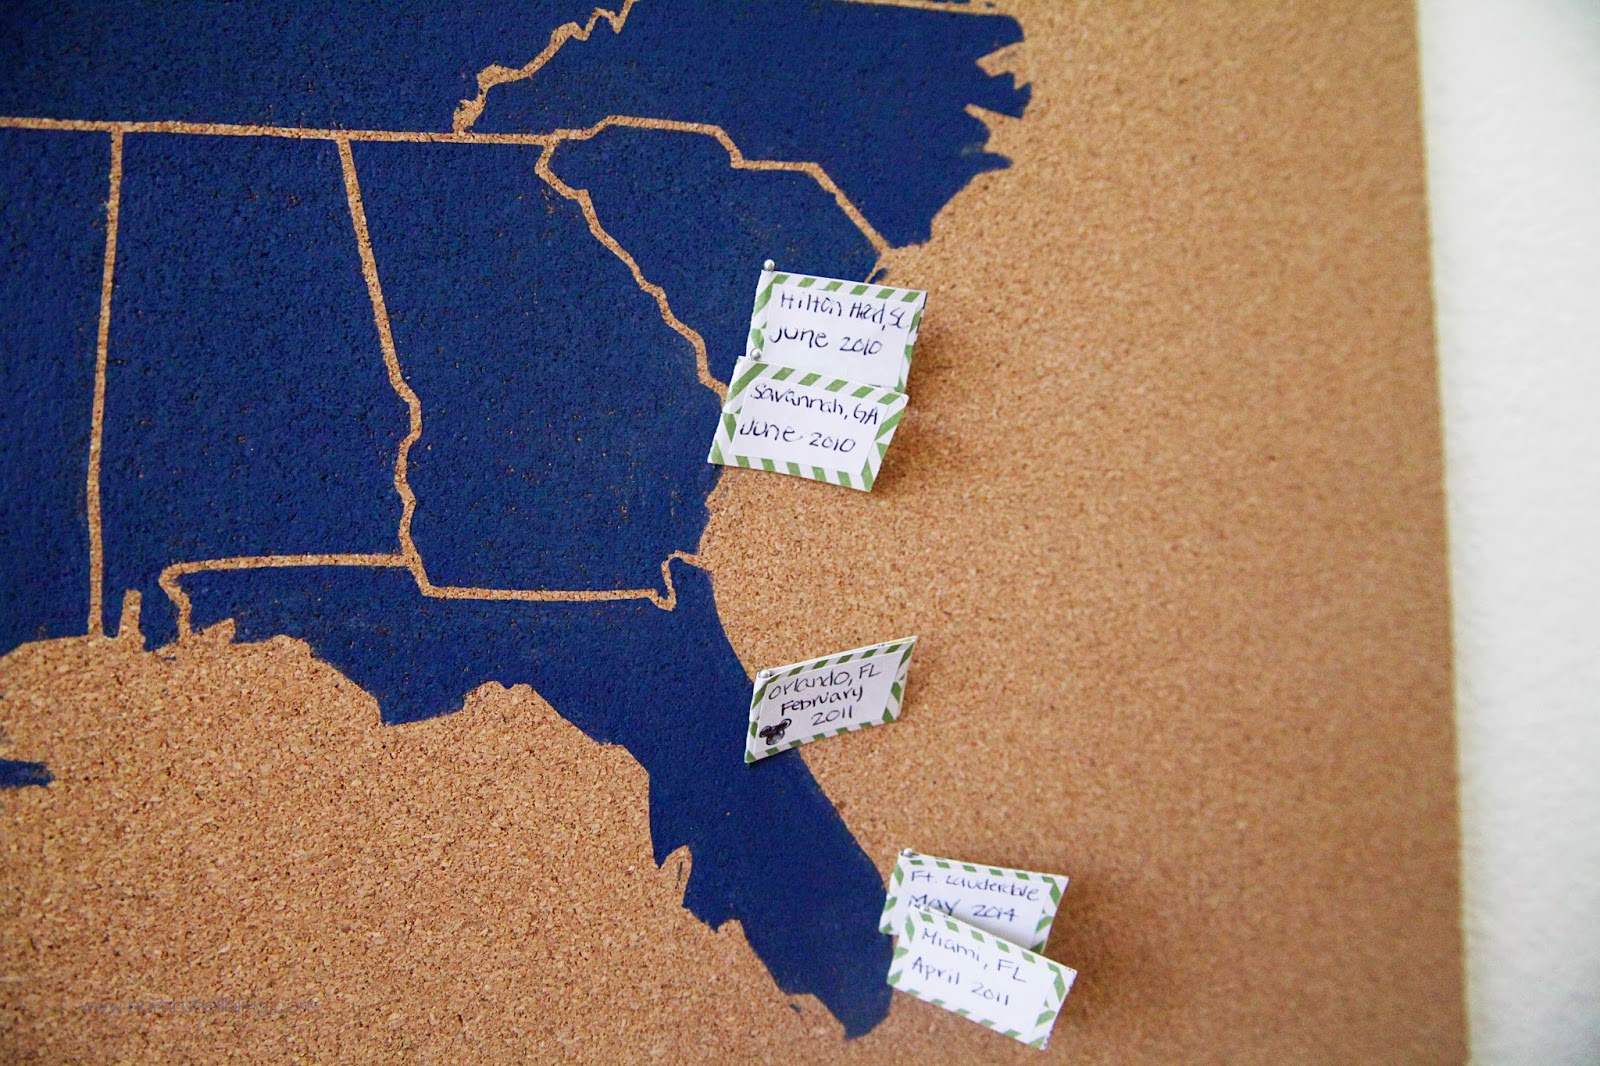 Us Map On Cork Board.Usa Cork Board Map